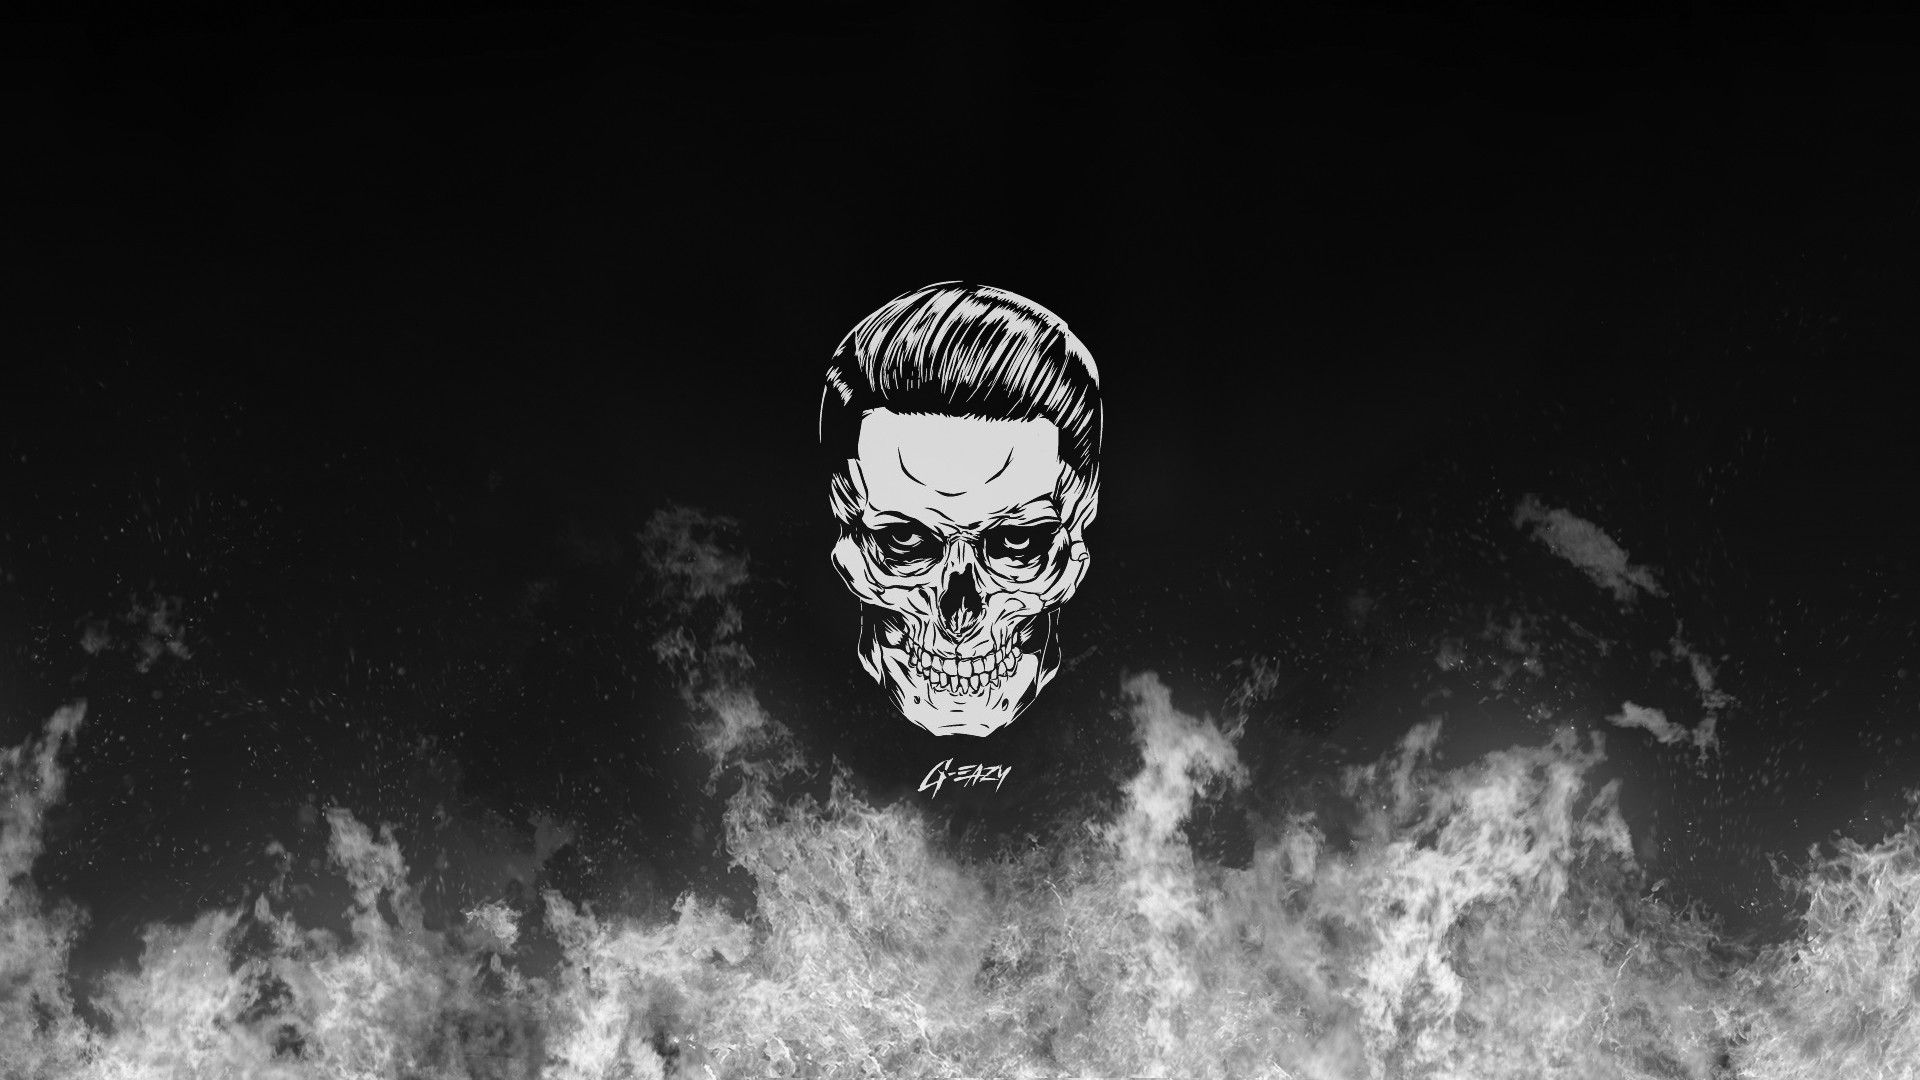 Best Wallpaper Gallery With G Eazy Skull And Hd Wallpapers We Collected Full High Quality Pictures And Background Hd Wallpaper Hd Wallpaper Wallpaper Gallery